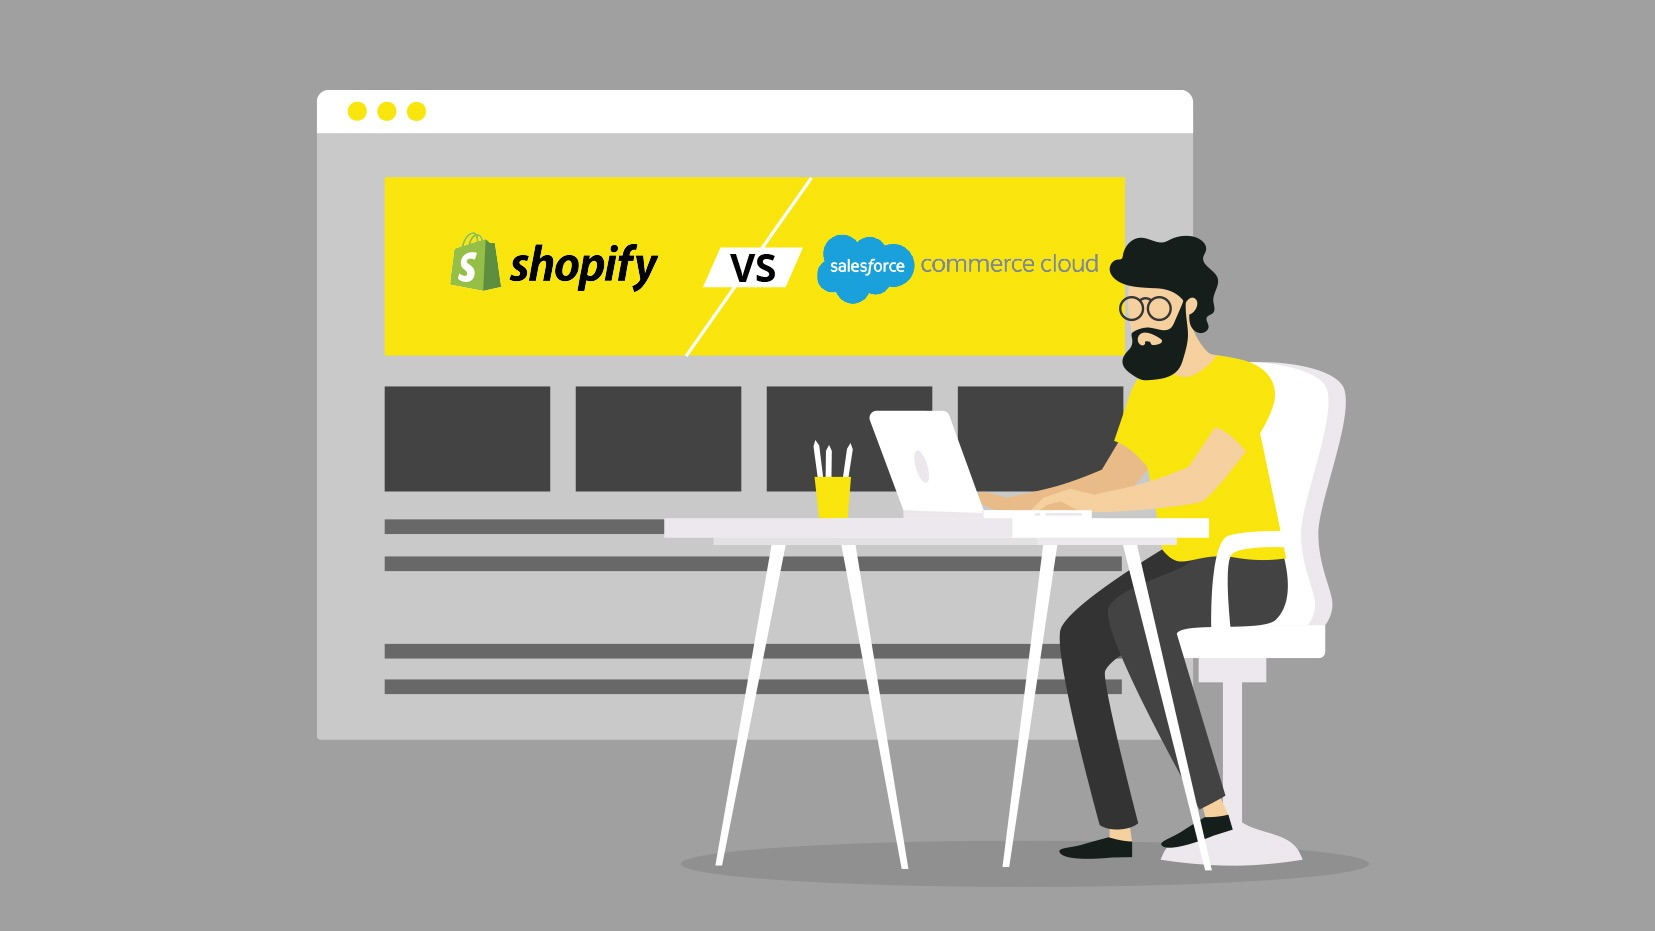 Shopify vs Salesforce Commerce Cloud: Which One Should I Choose?